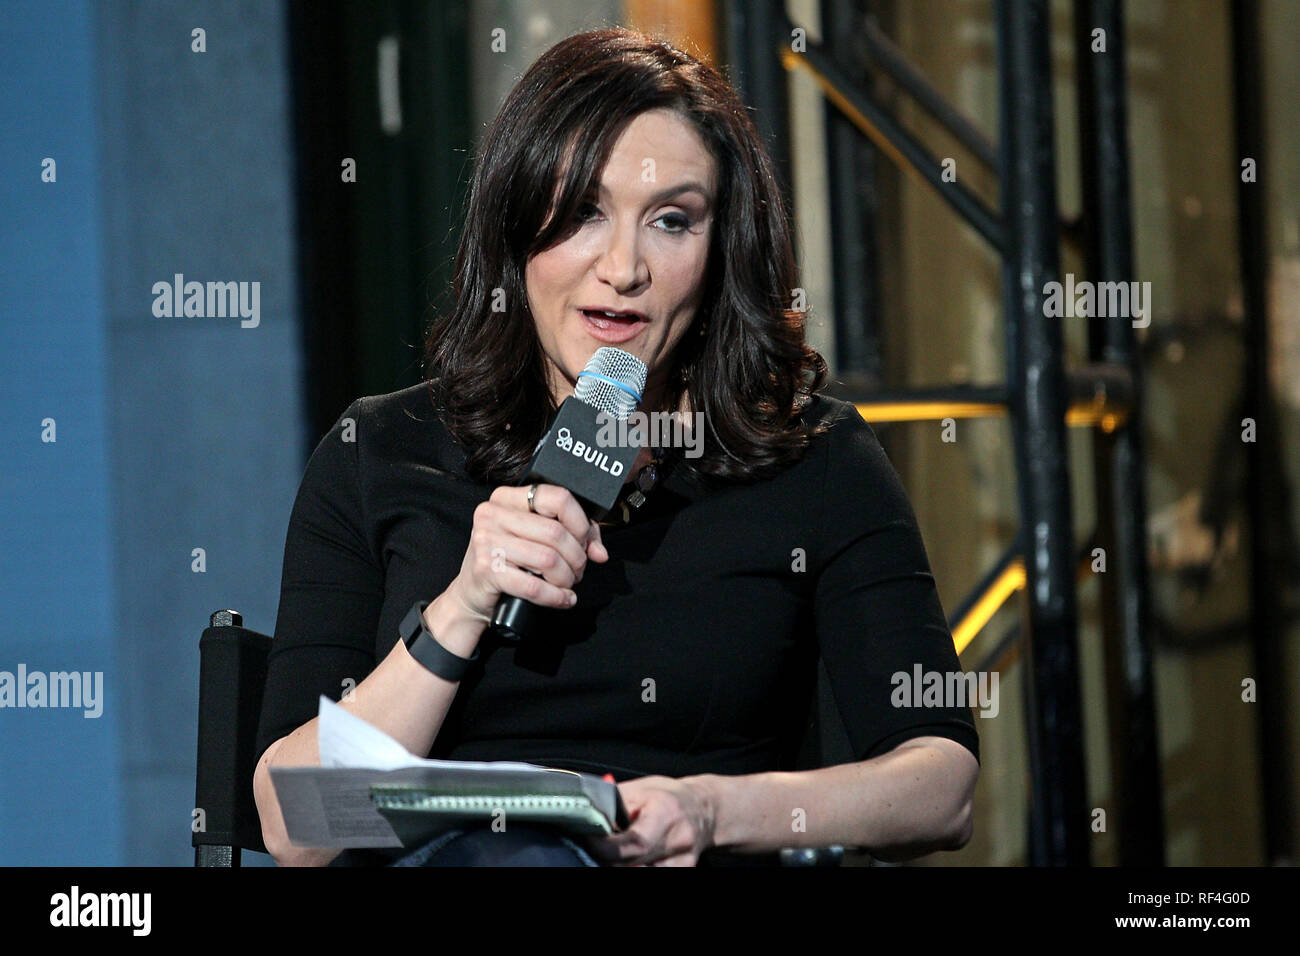 New York, USA. 09 Mar, 2015. Moderator, Michelle Caruso Cabrera visits The Monday, Mar 9, 2015 AOL BUILD Series at BUILD Studio in New York, USA. Credit: Steve Mack/S.D. Mack Pictures/Alamy Stock Photo